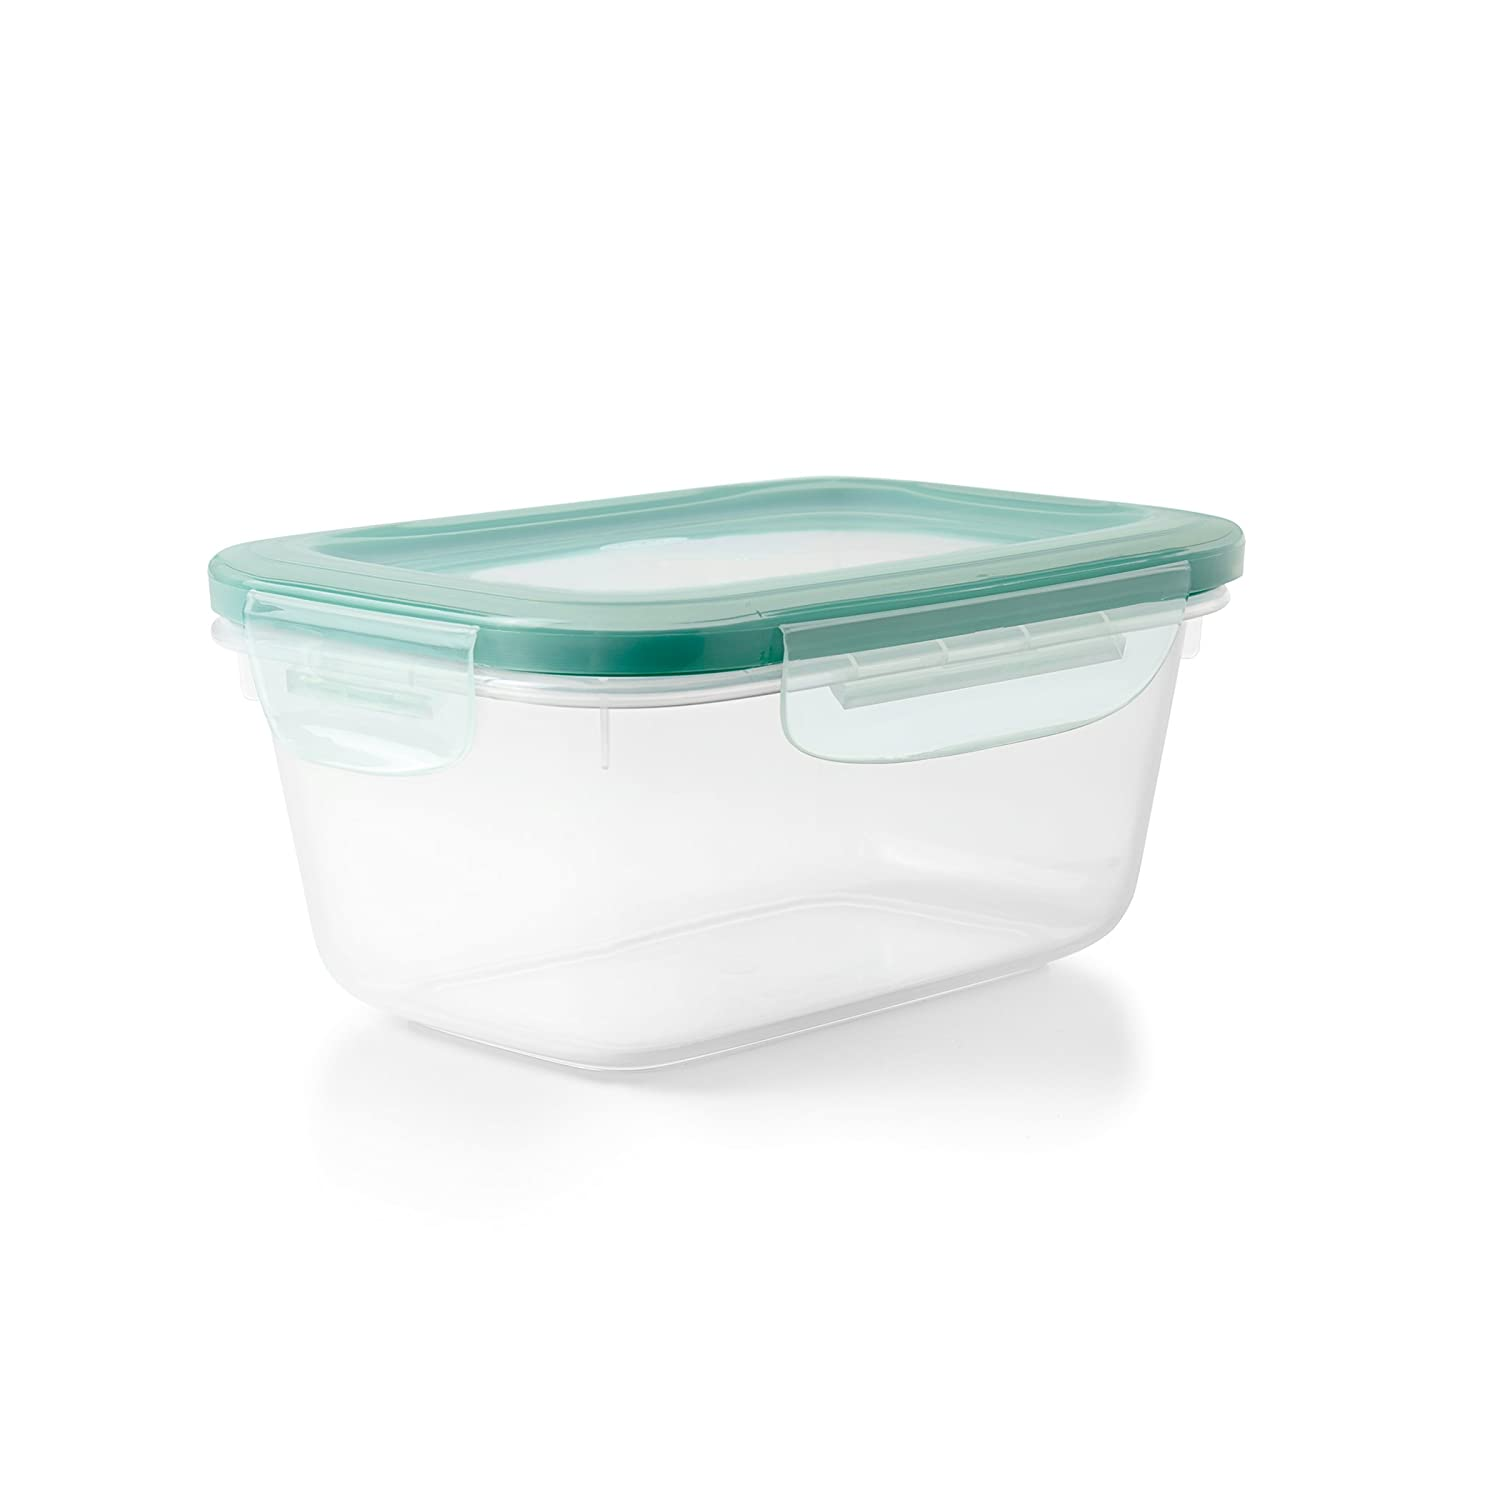 OXO Good Grips 1.6 Cup SNAP Leak Proof Food Storage Container, Clear 11175400